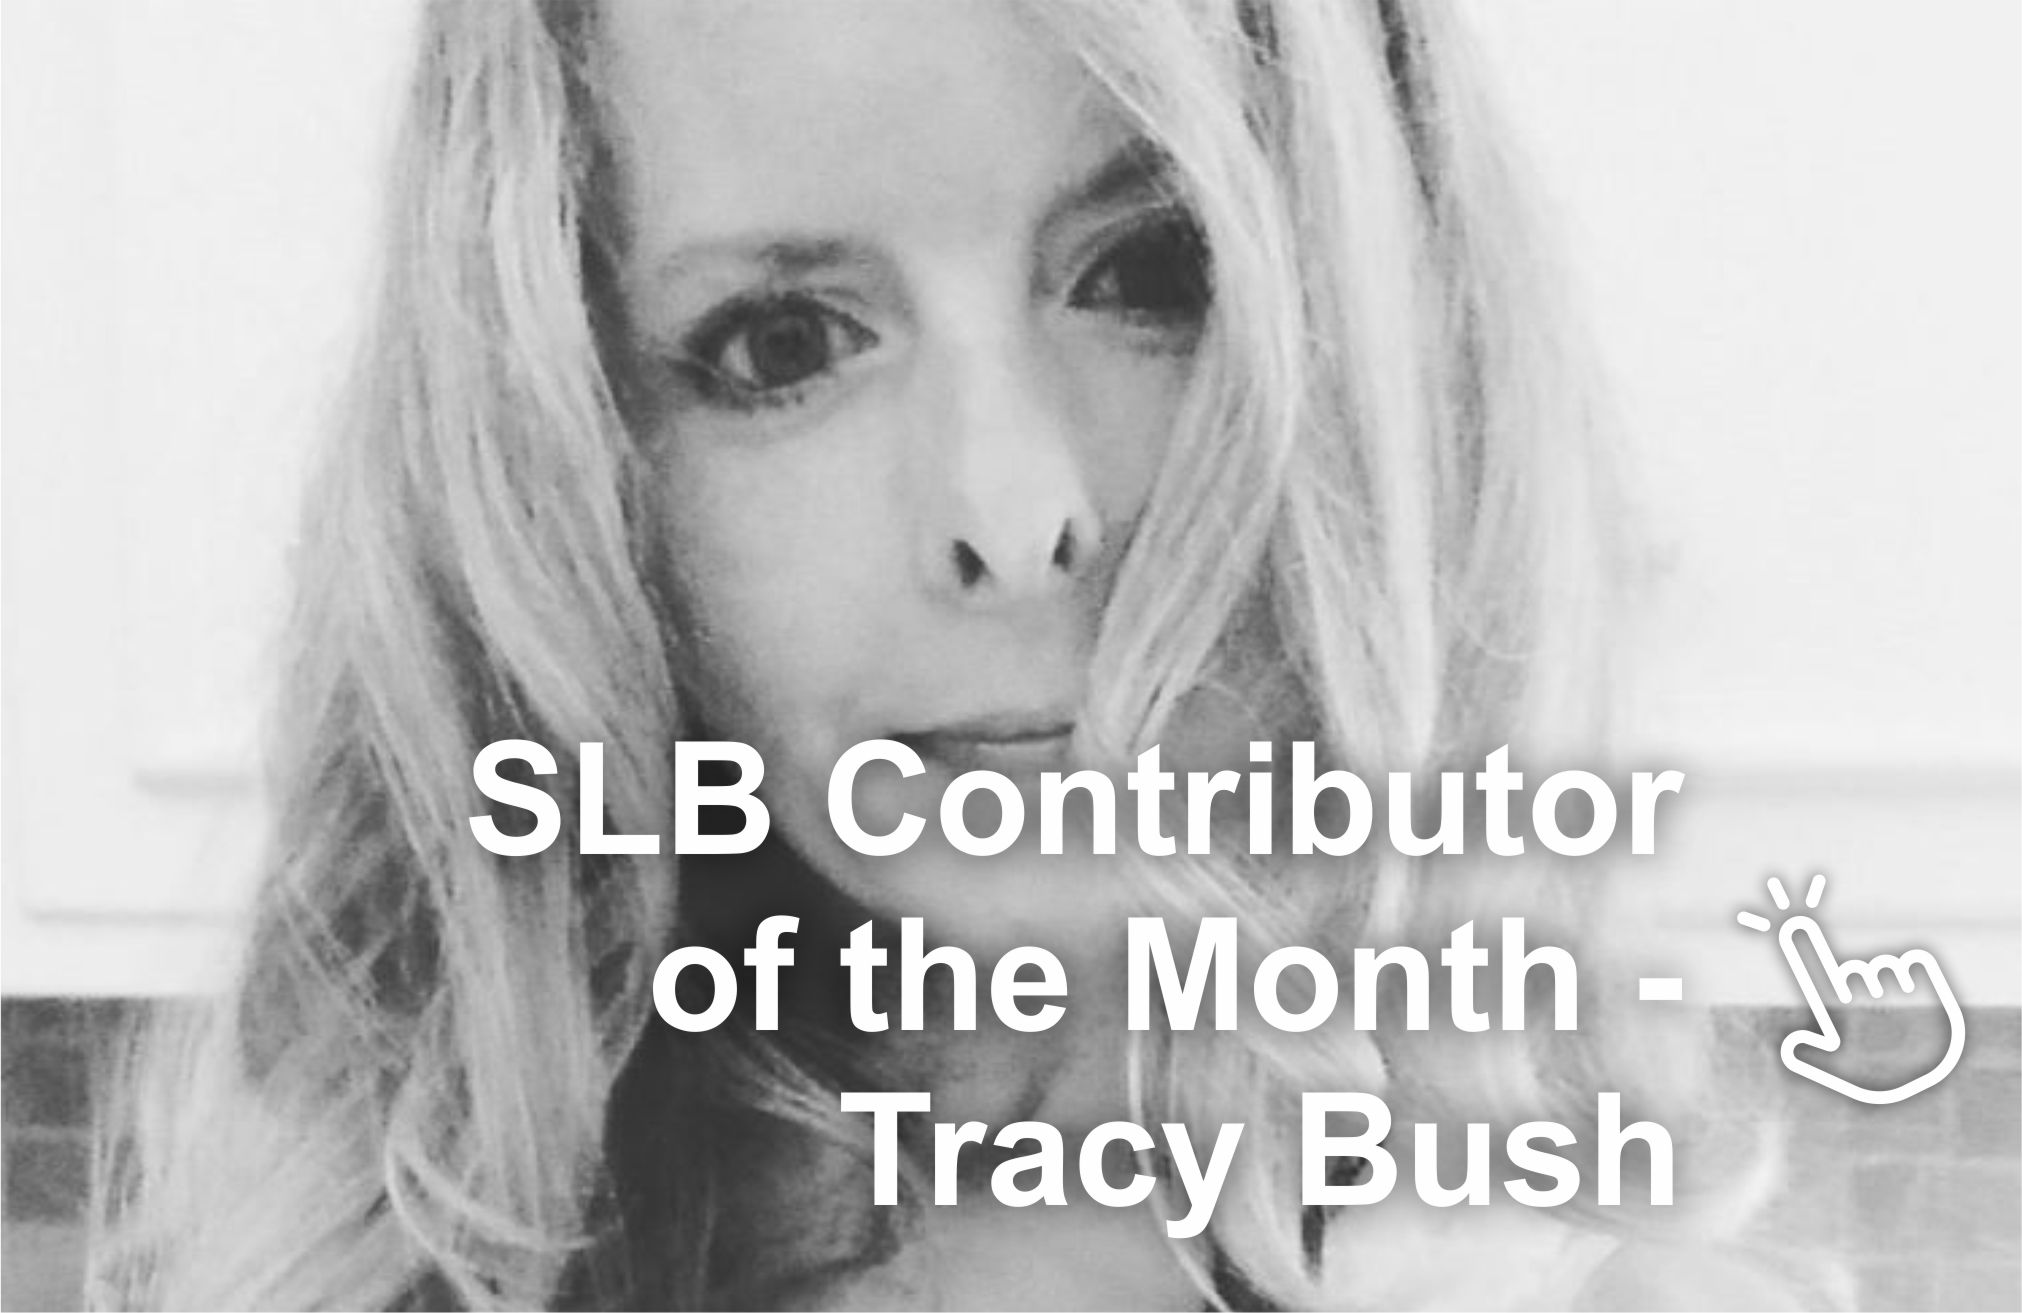 SLB Contributor of the Month - Meet Tracy Bush